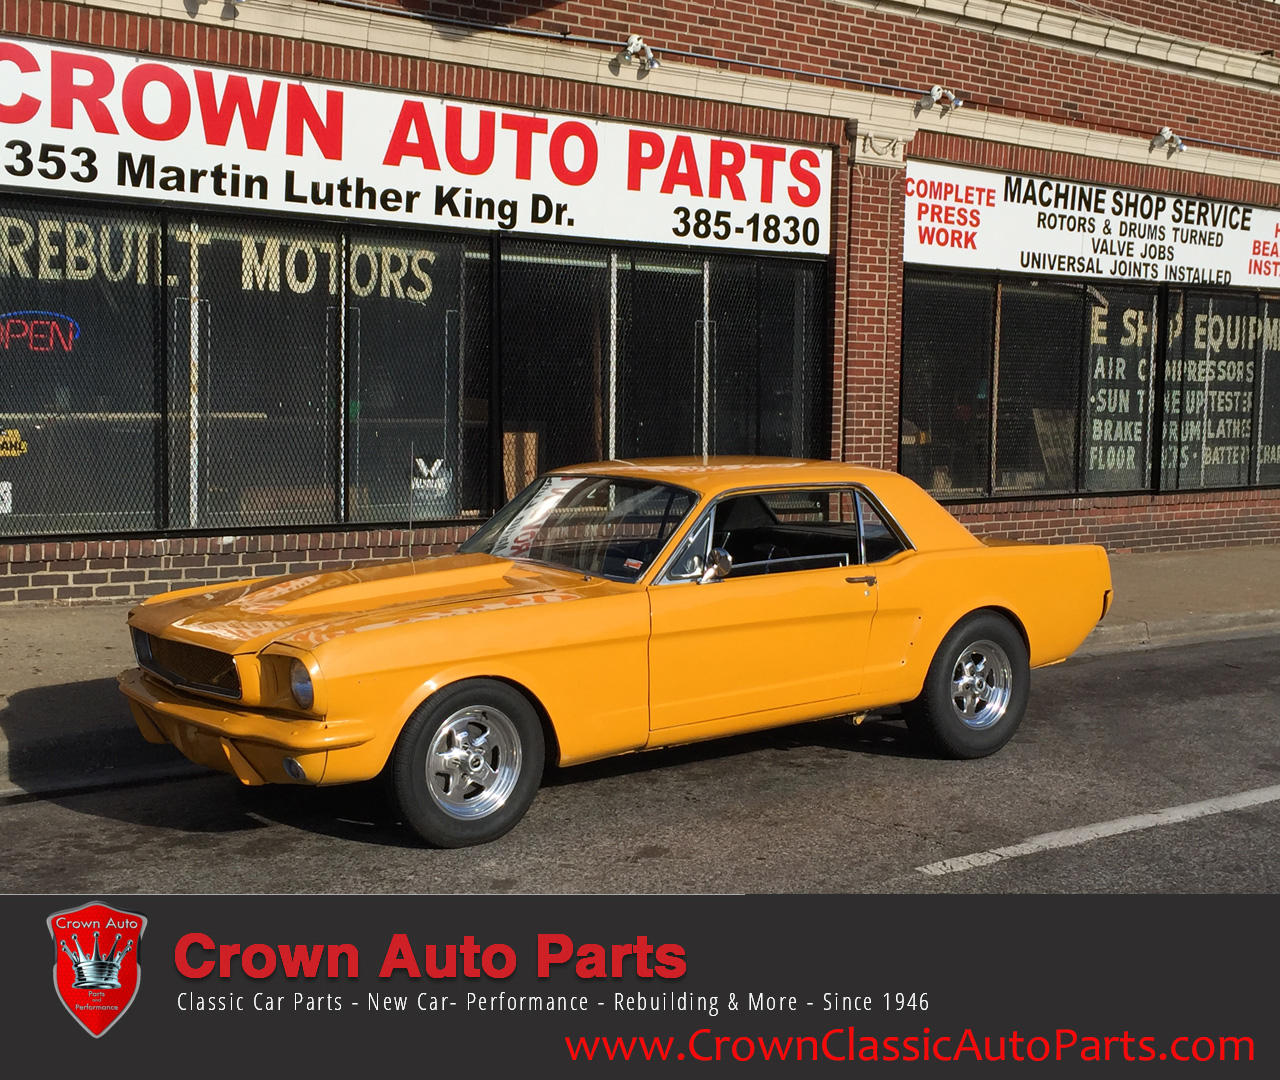 Crown Auto Parts & Rebuilding image 23